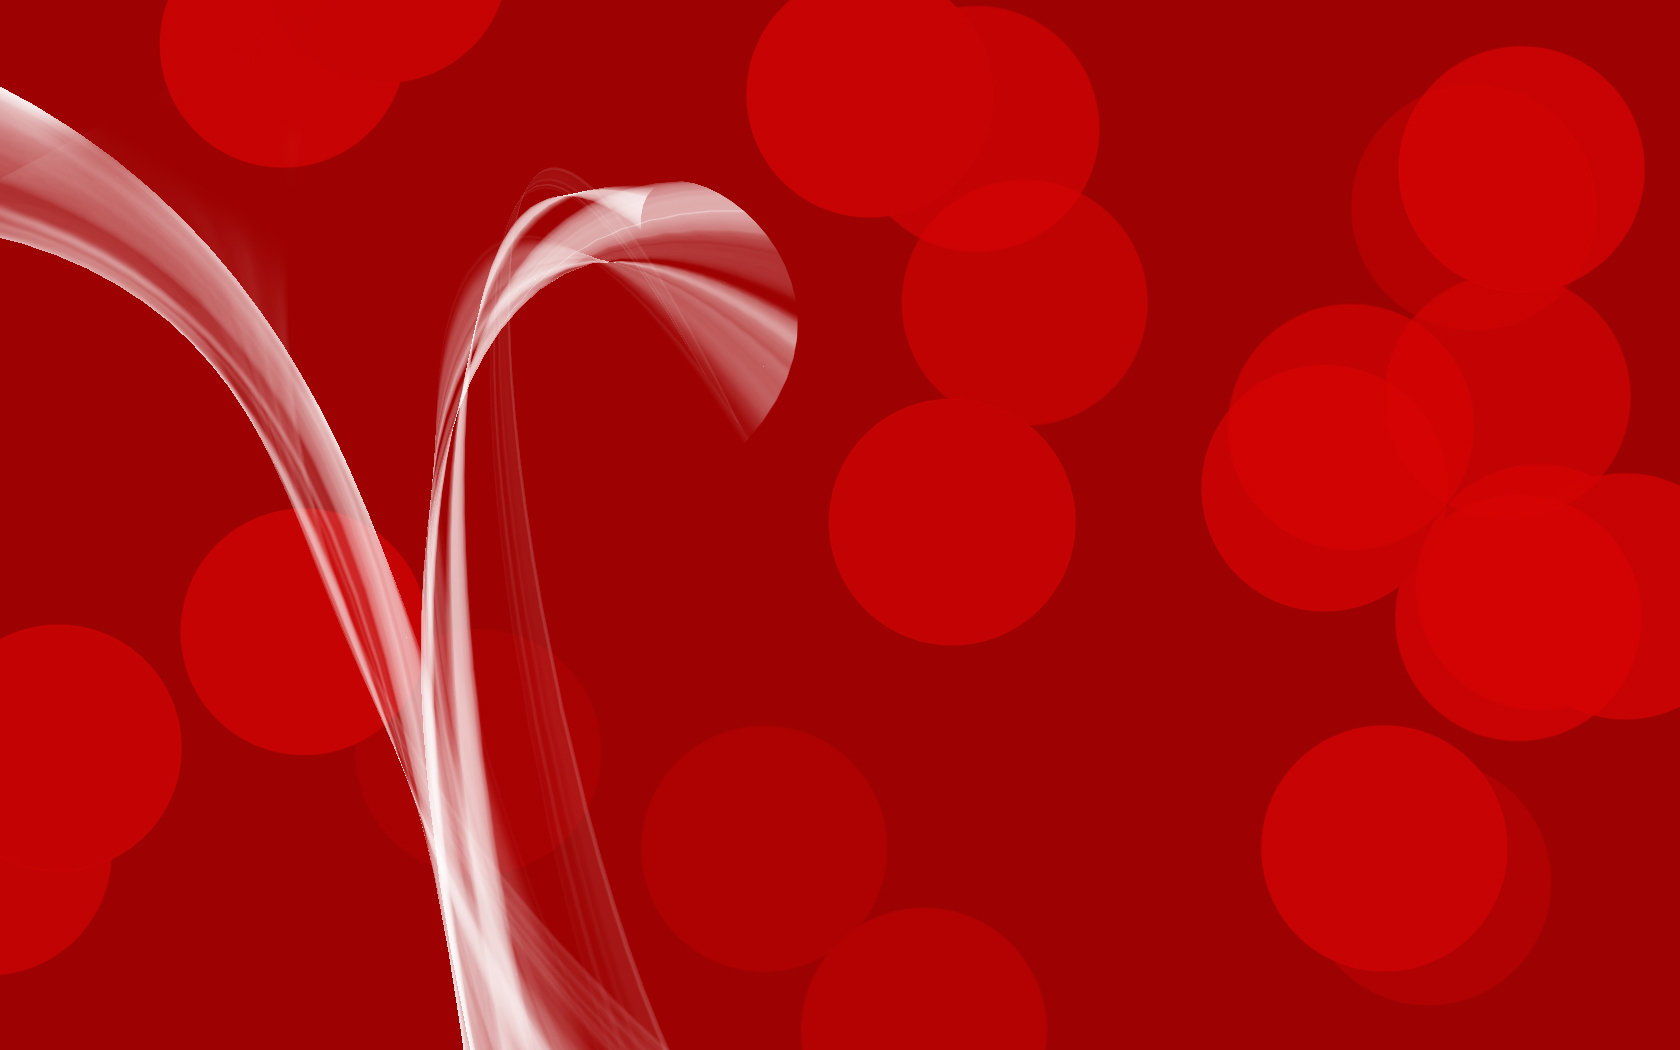 candy cane wallpaper by VanillaShimmer 1680x1050